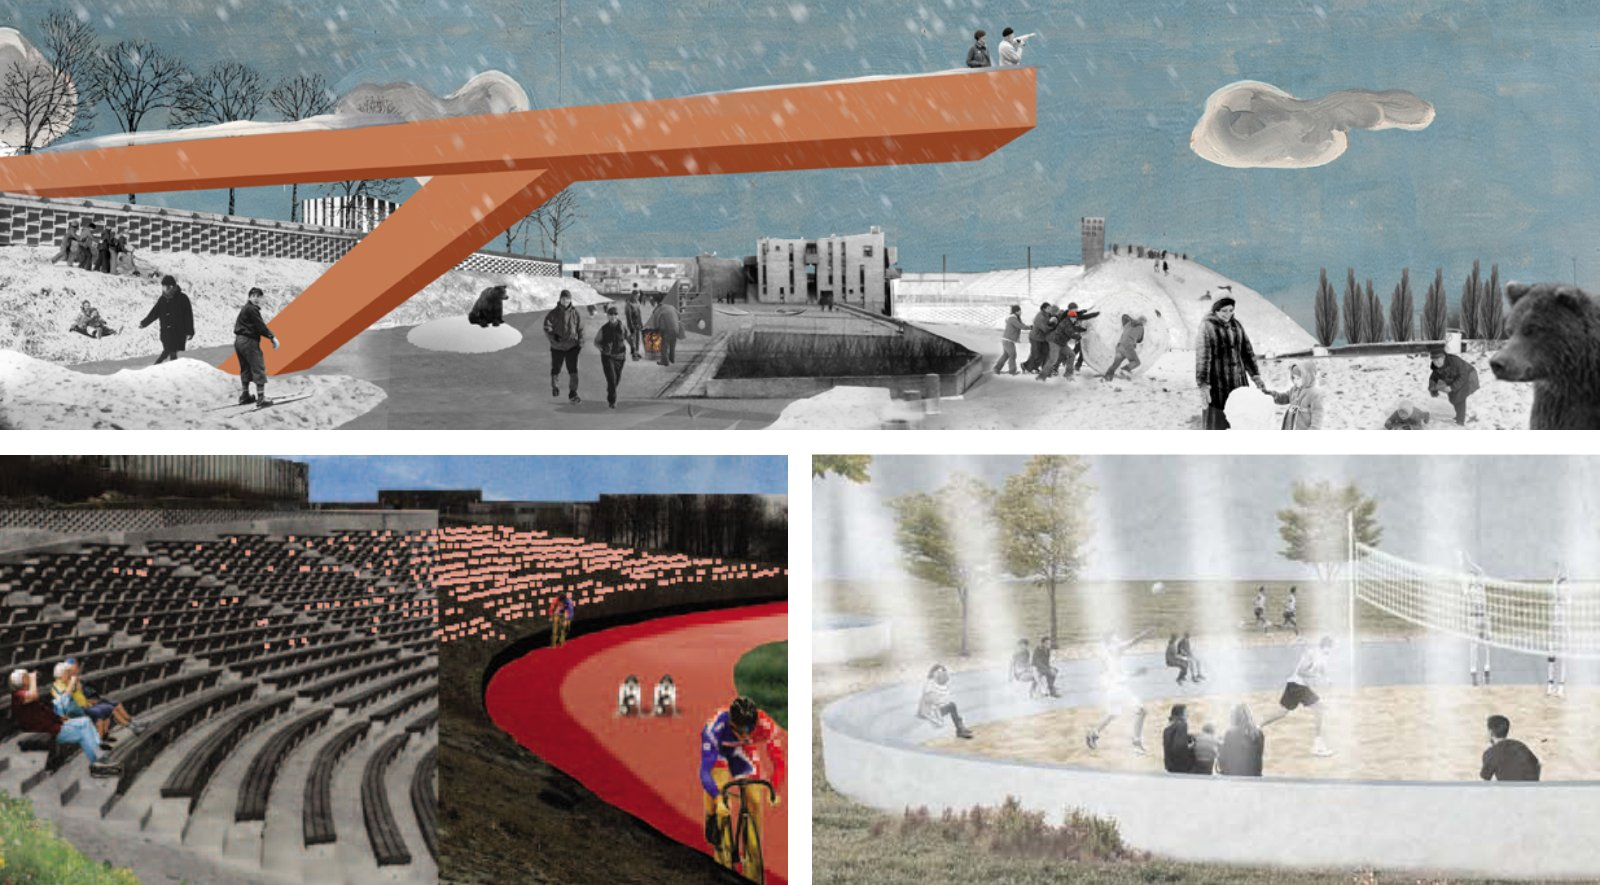 Warsaw Sports Park Competition